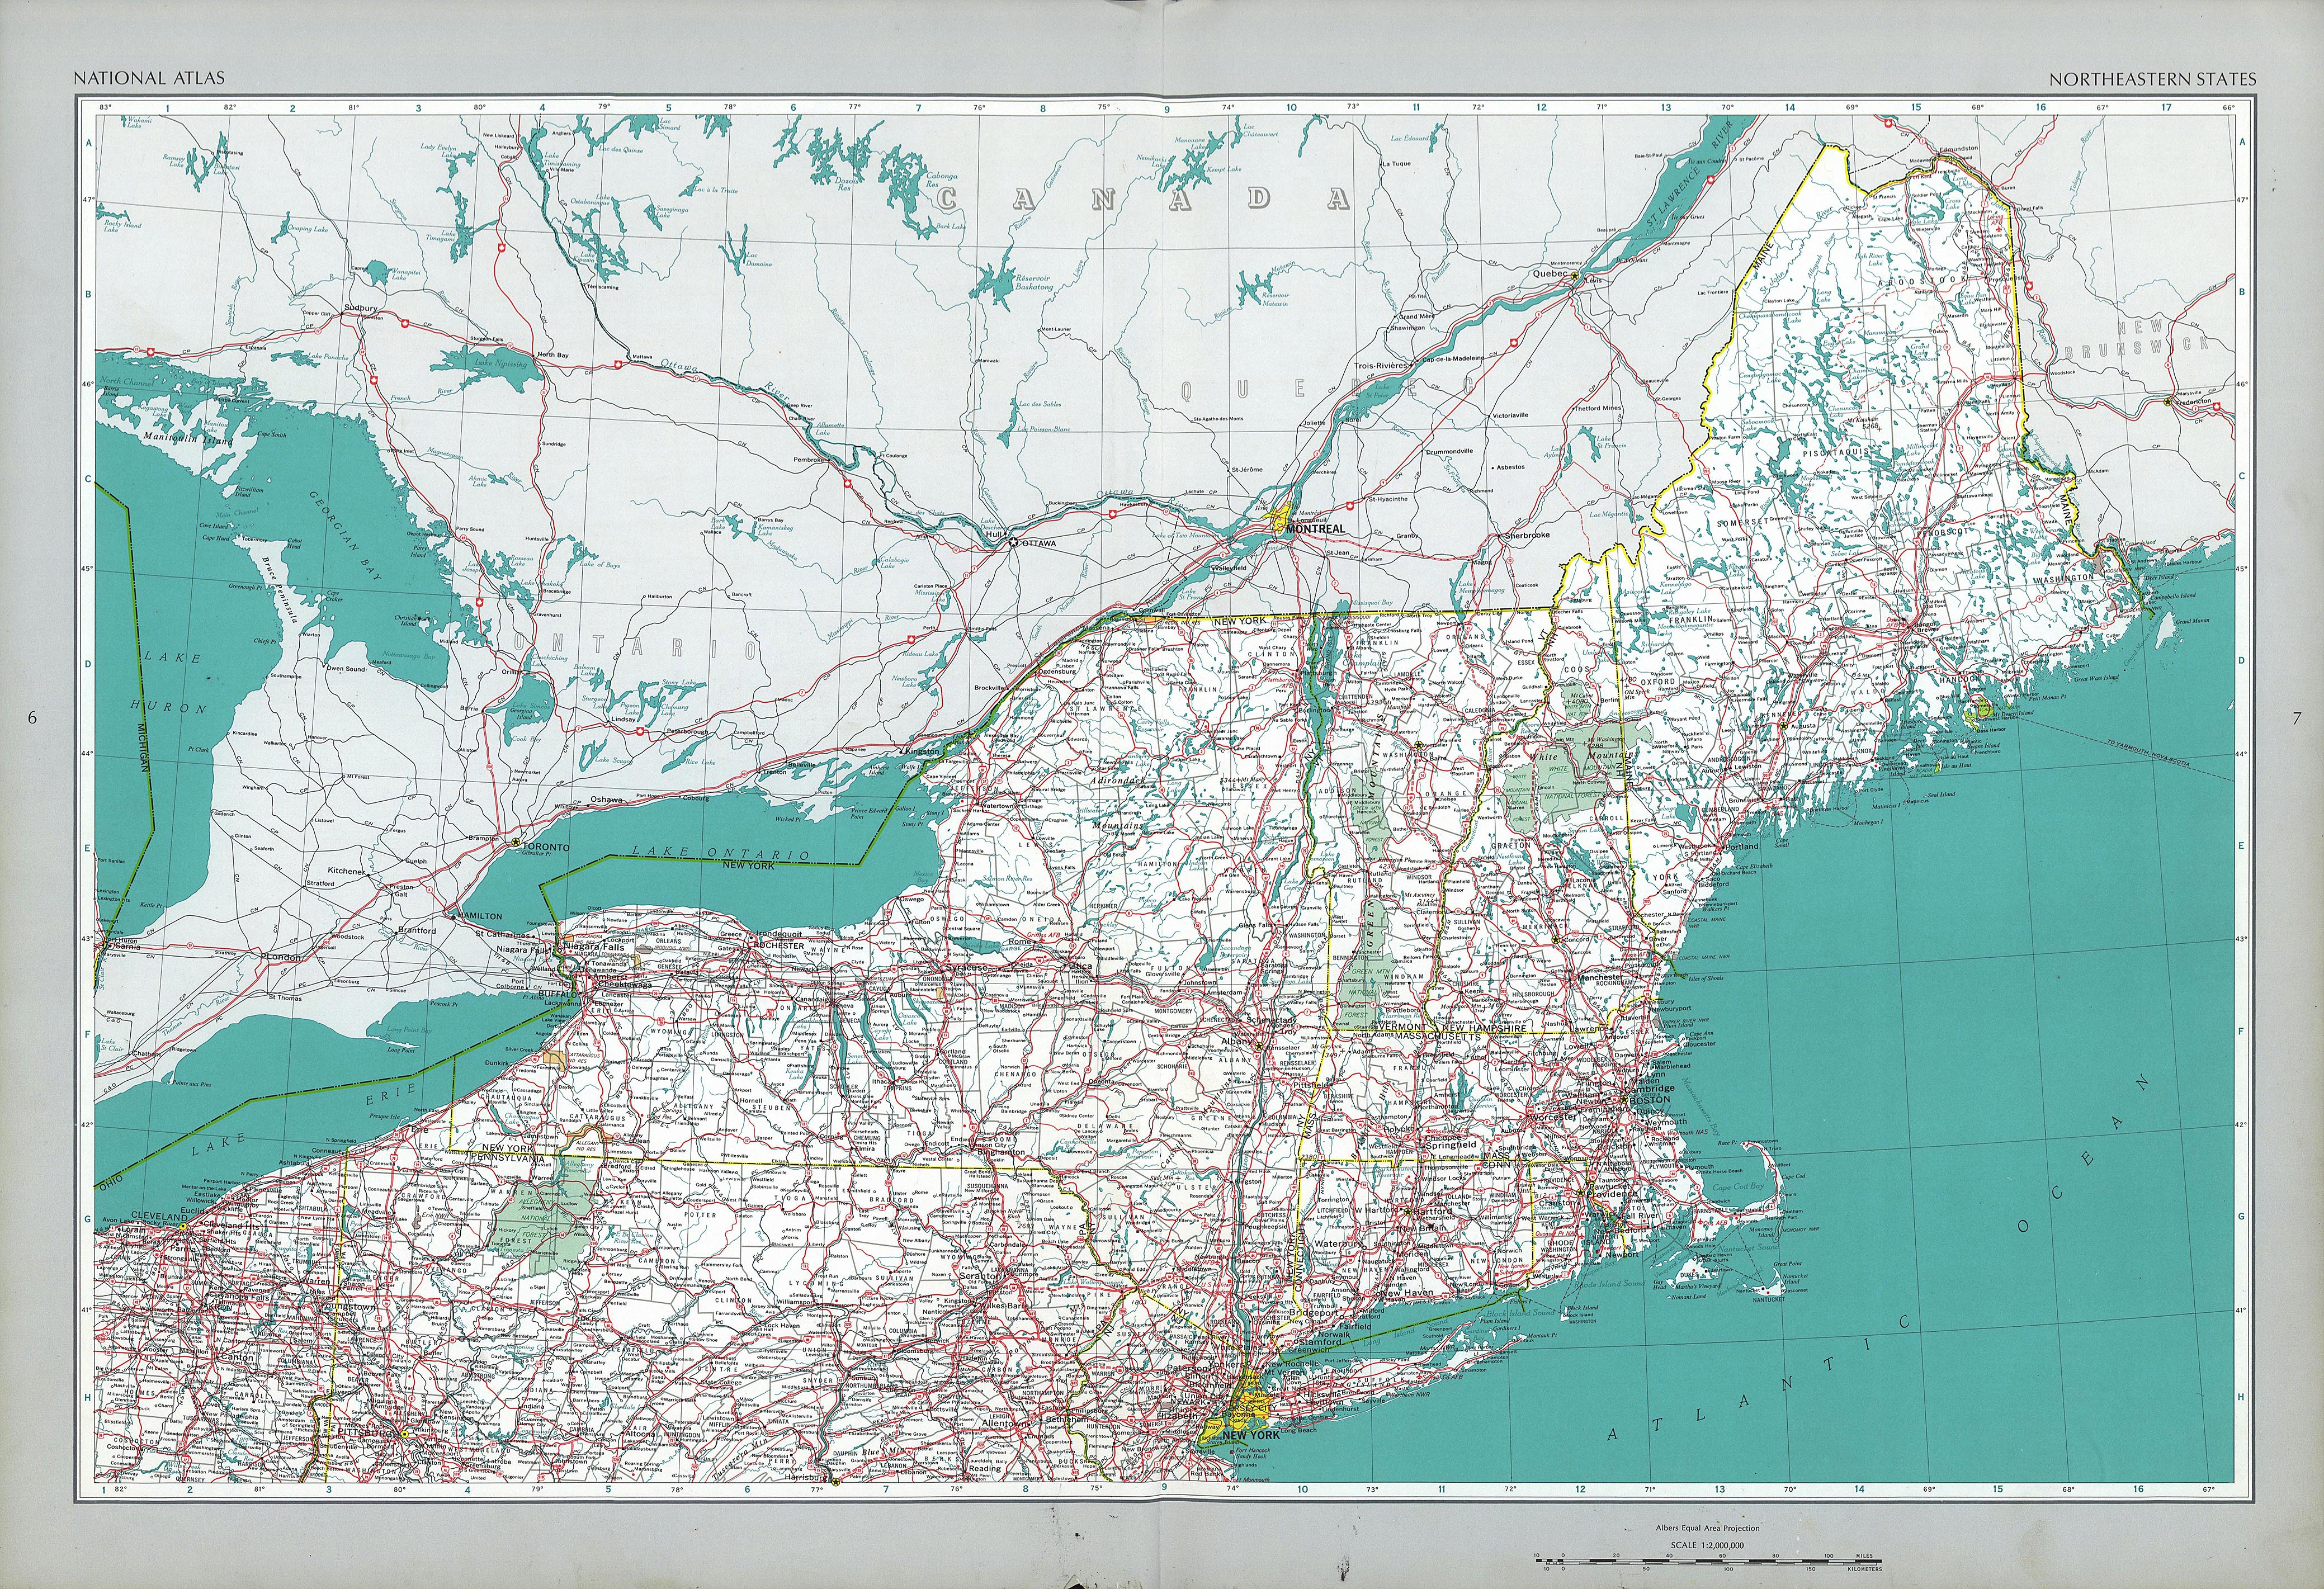 Map Northeast Usa Millstonehills Map Northeast Usa Millstonehills - Eastern us road maps with states and cities